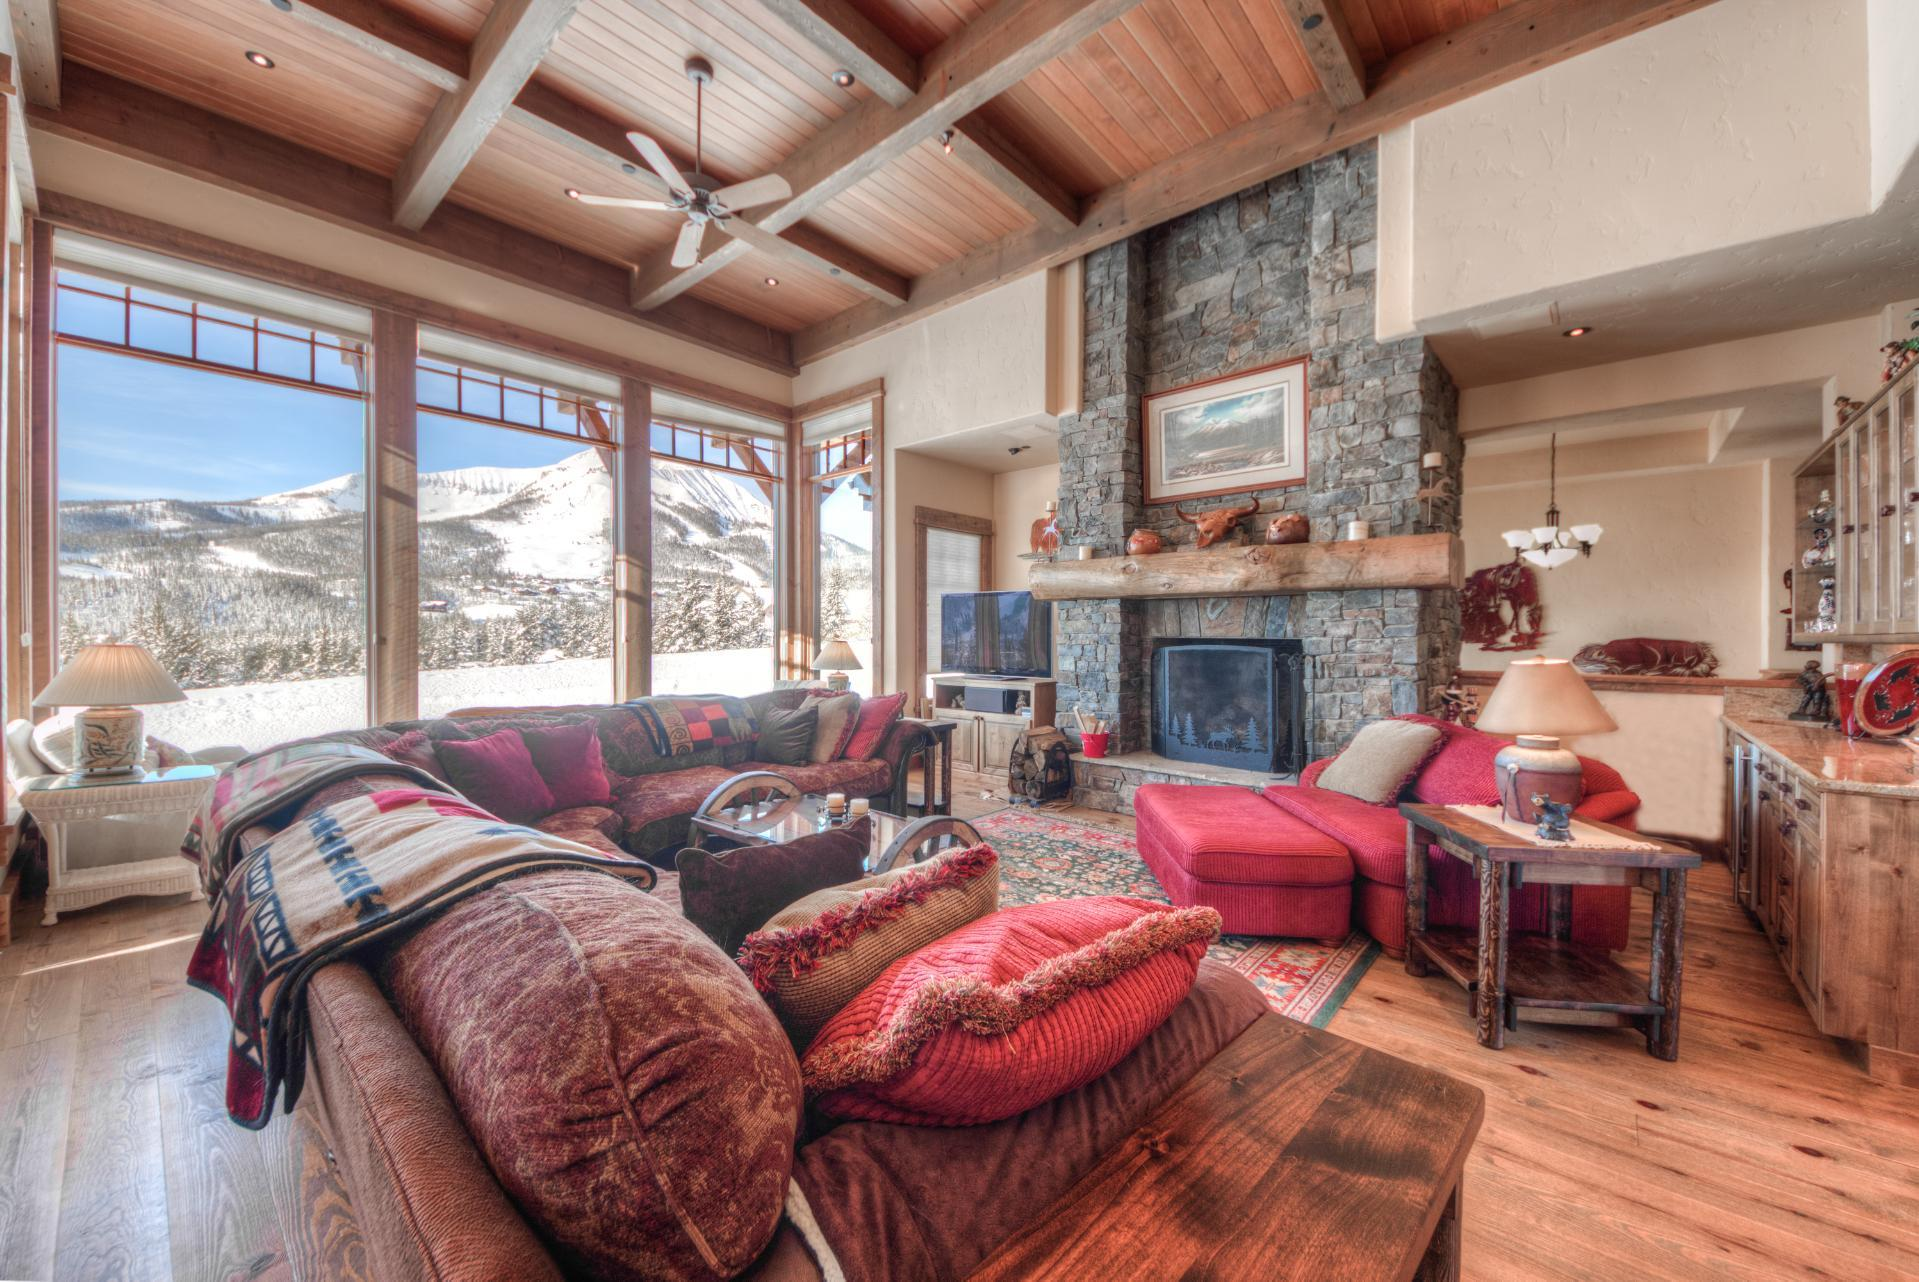 Property Image 1 - Family-Friendly Mountain Village Home with Game Room